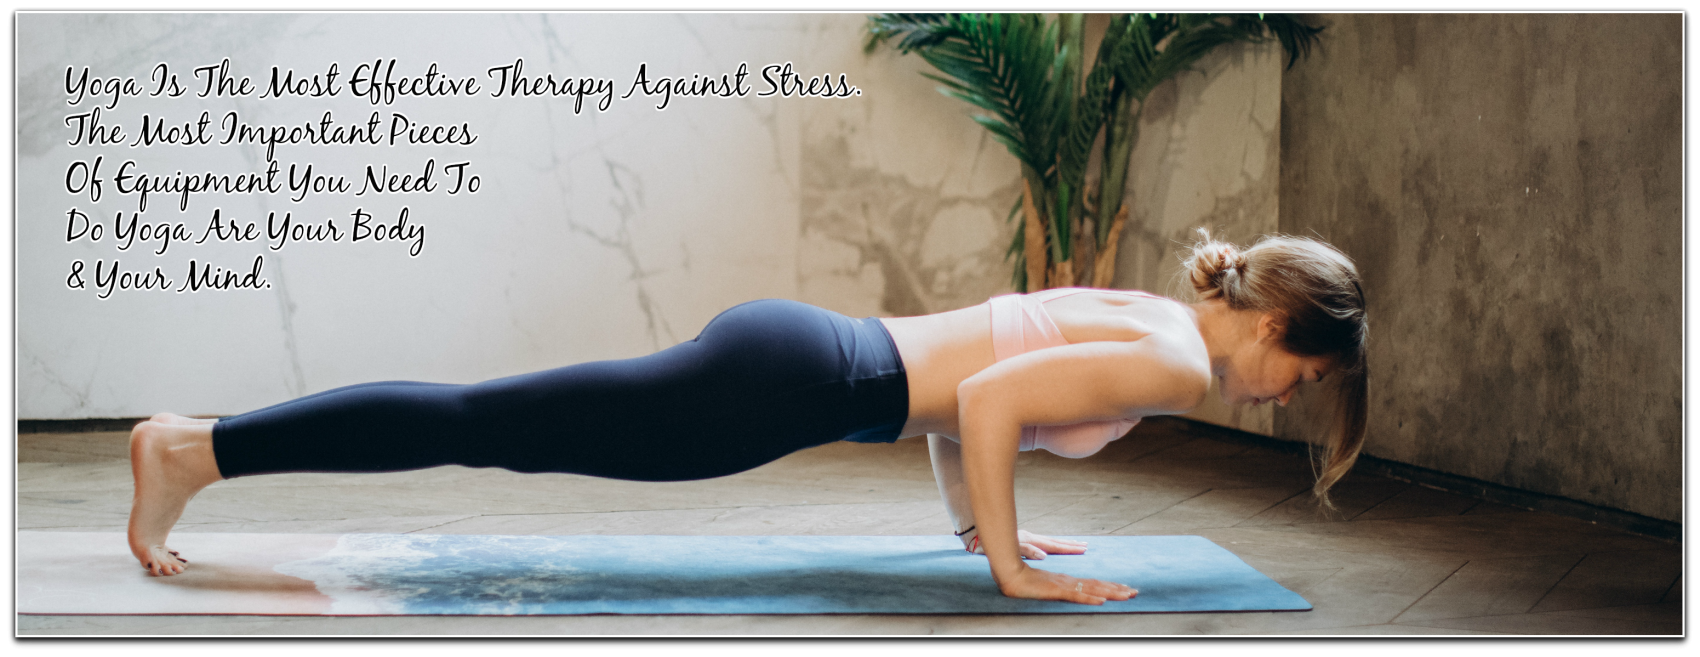 Yoga Is The Most Effective Therapy Against Stress. The Most Important Pieces Of Equipment You Need To Do Yoga Are Your Body & Your Mind.